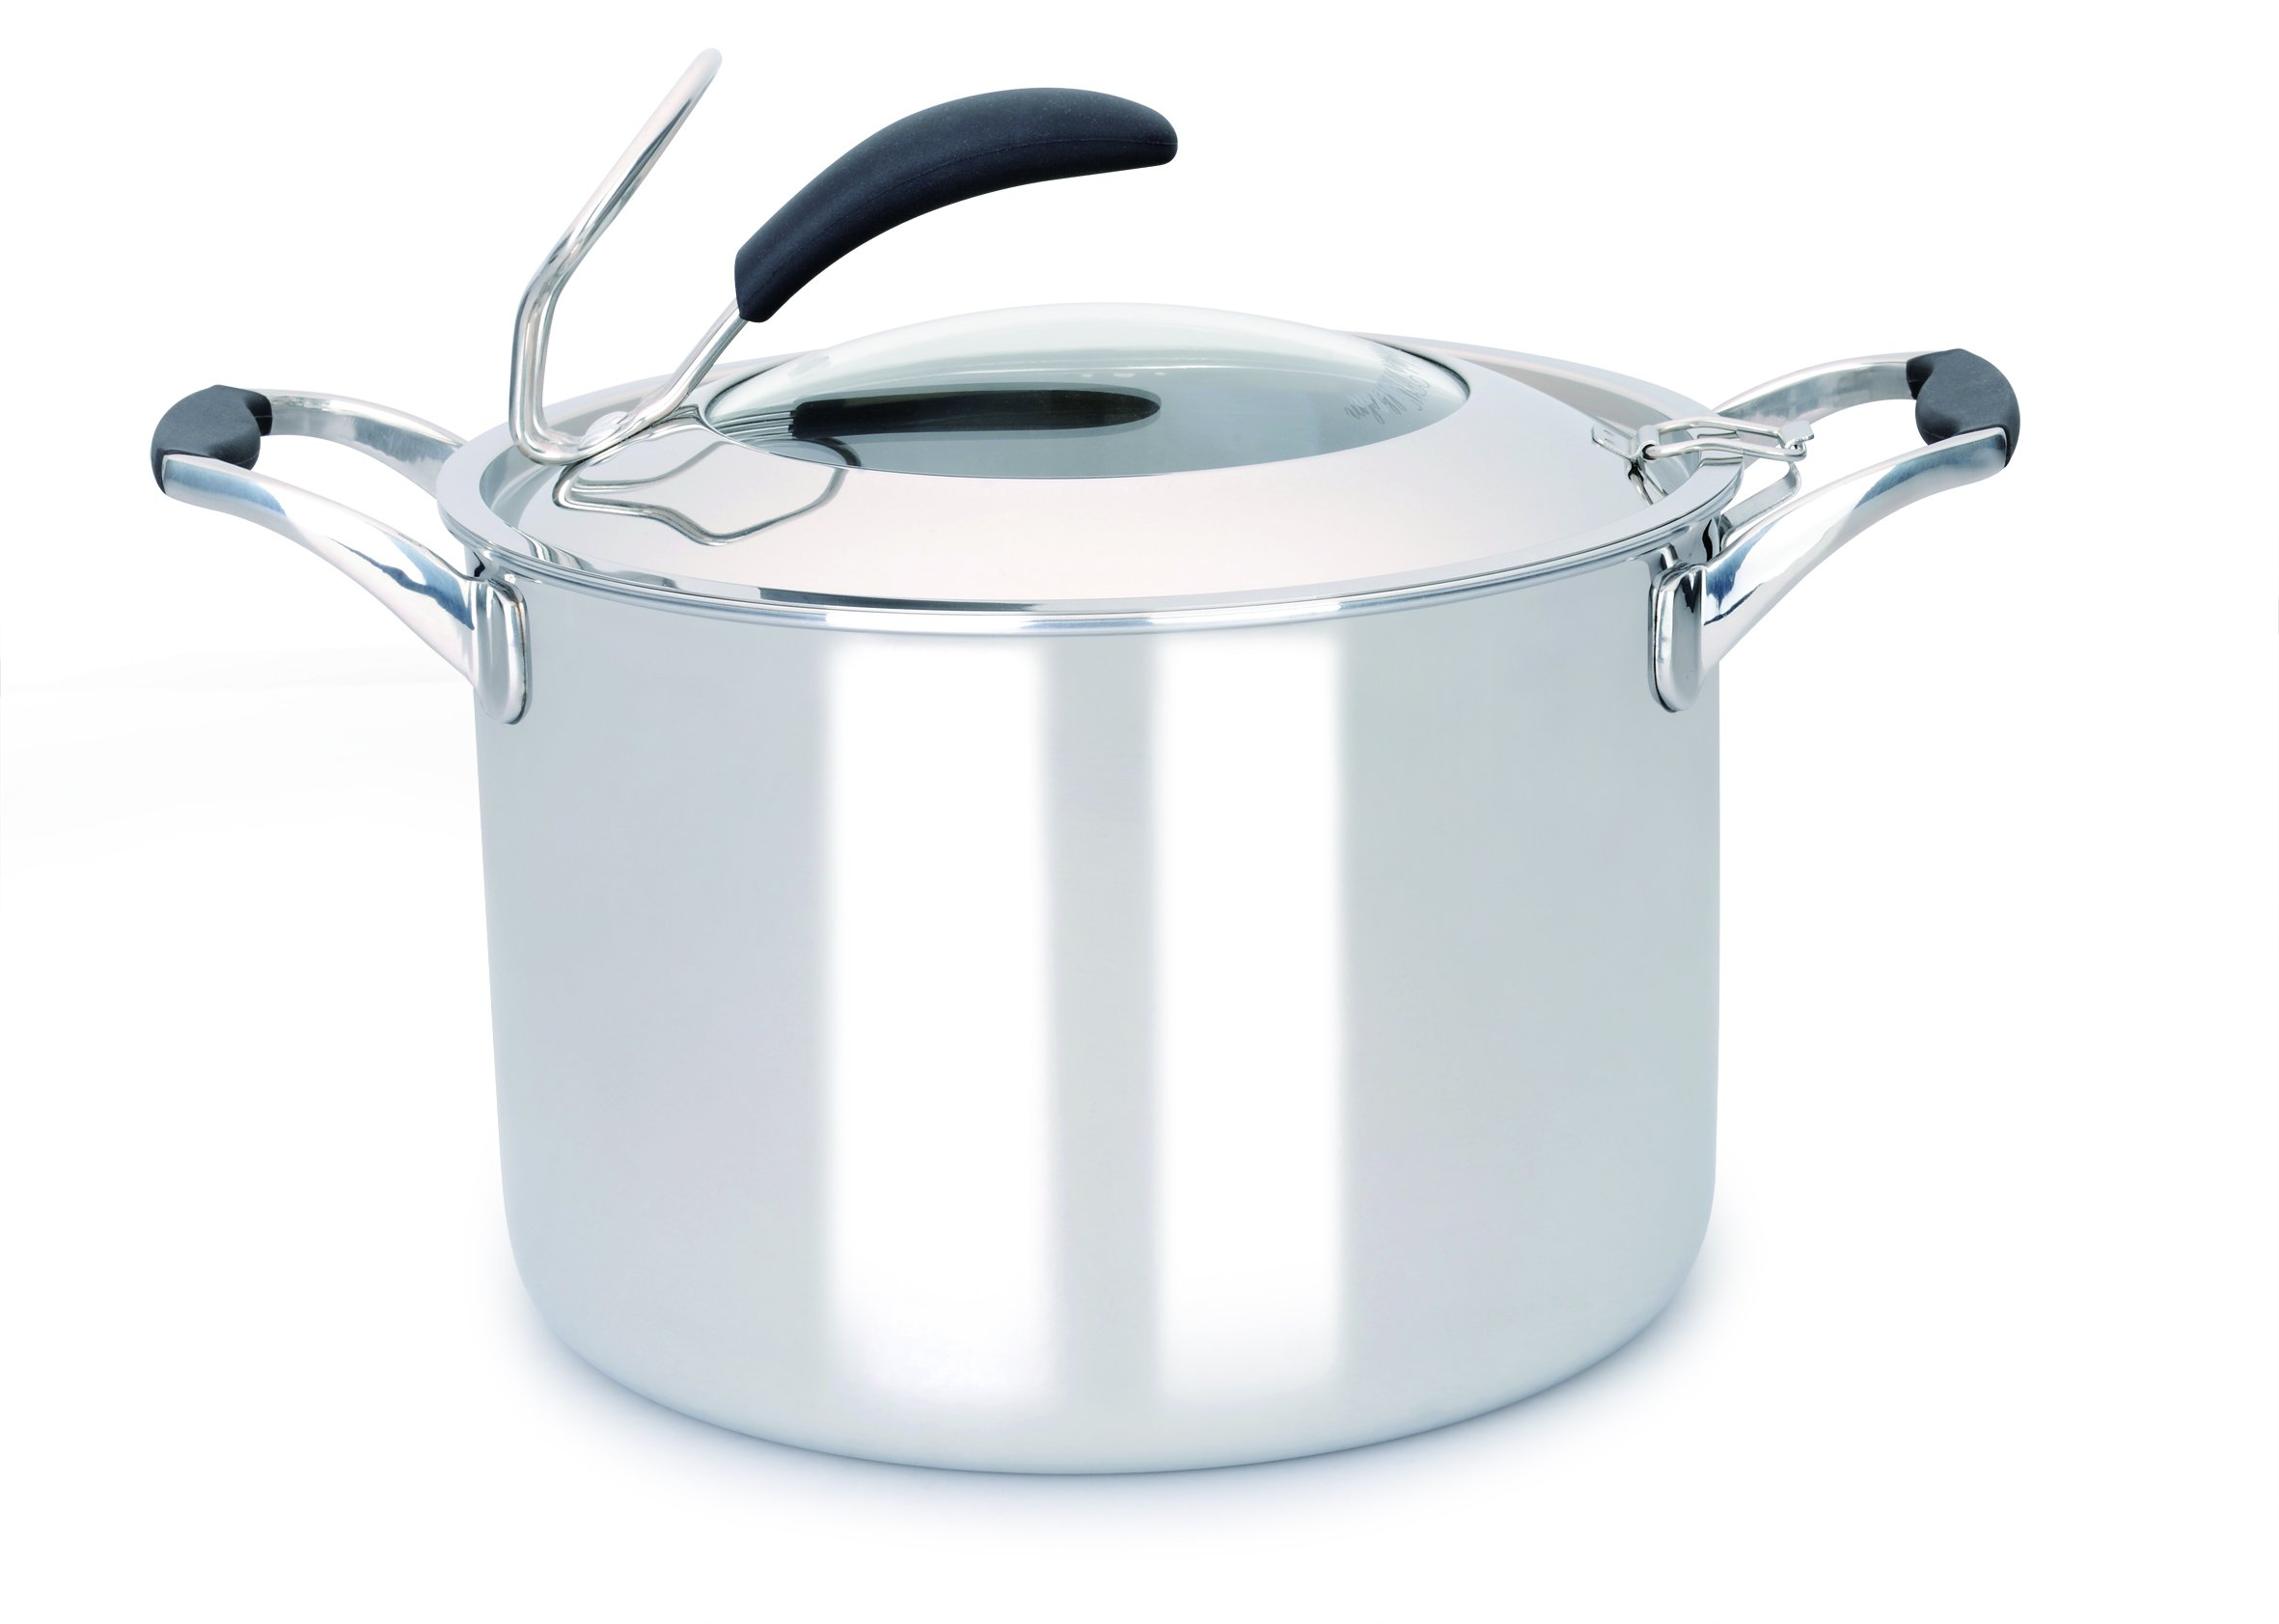 Gunter Wilhelm 308 Stockpot with Lid, 5-Ply, 8 quart, Stainless Steel Cookware (Pack of 2)